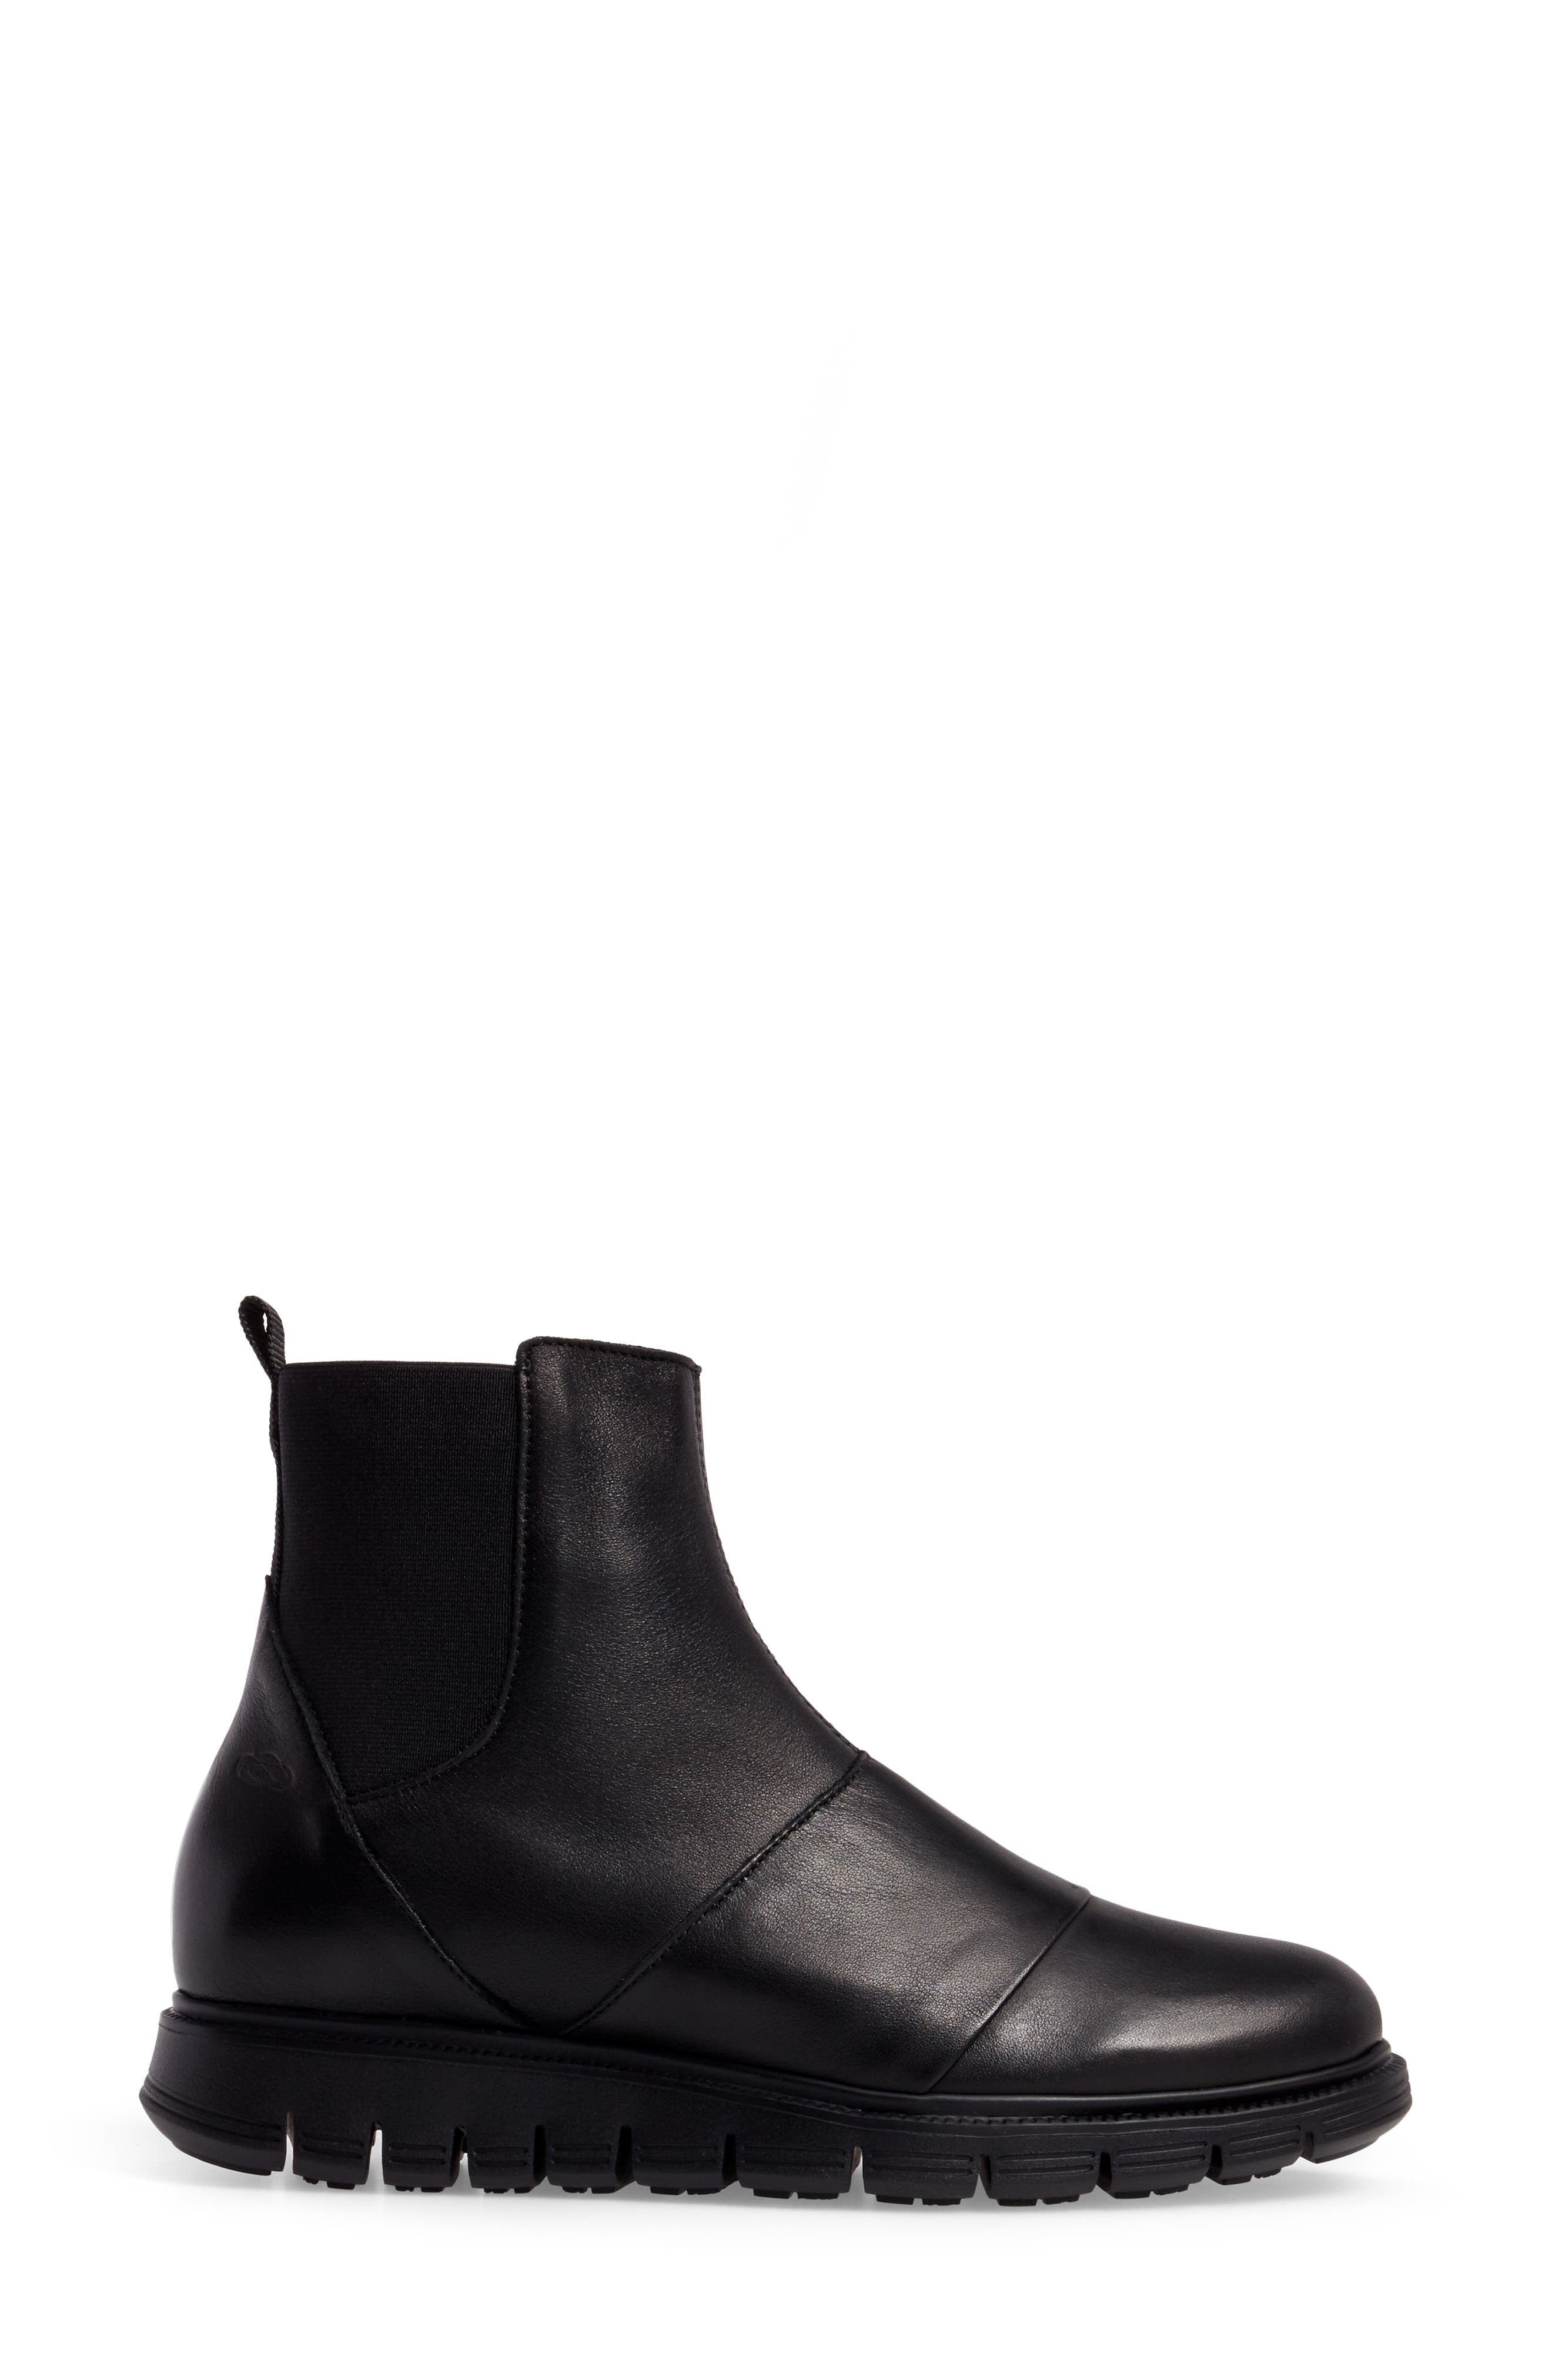 Gish Water-Resistant Bootie,                             Alternate thumbnail 3, color,                             Black Leather